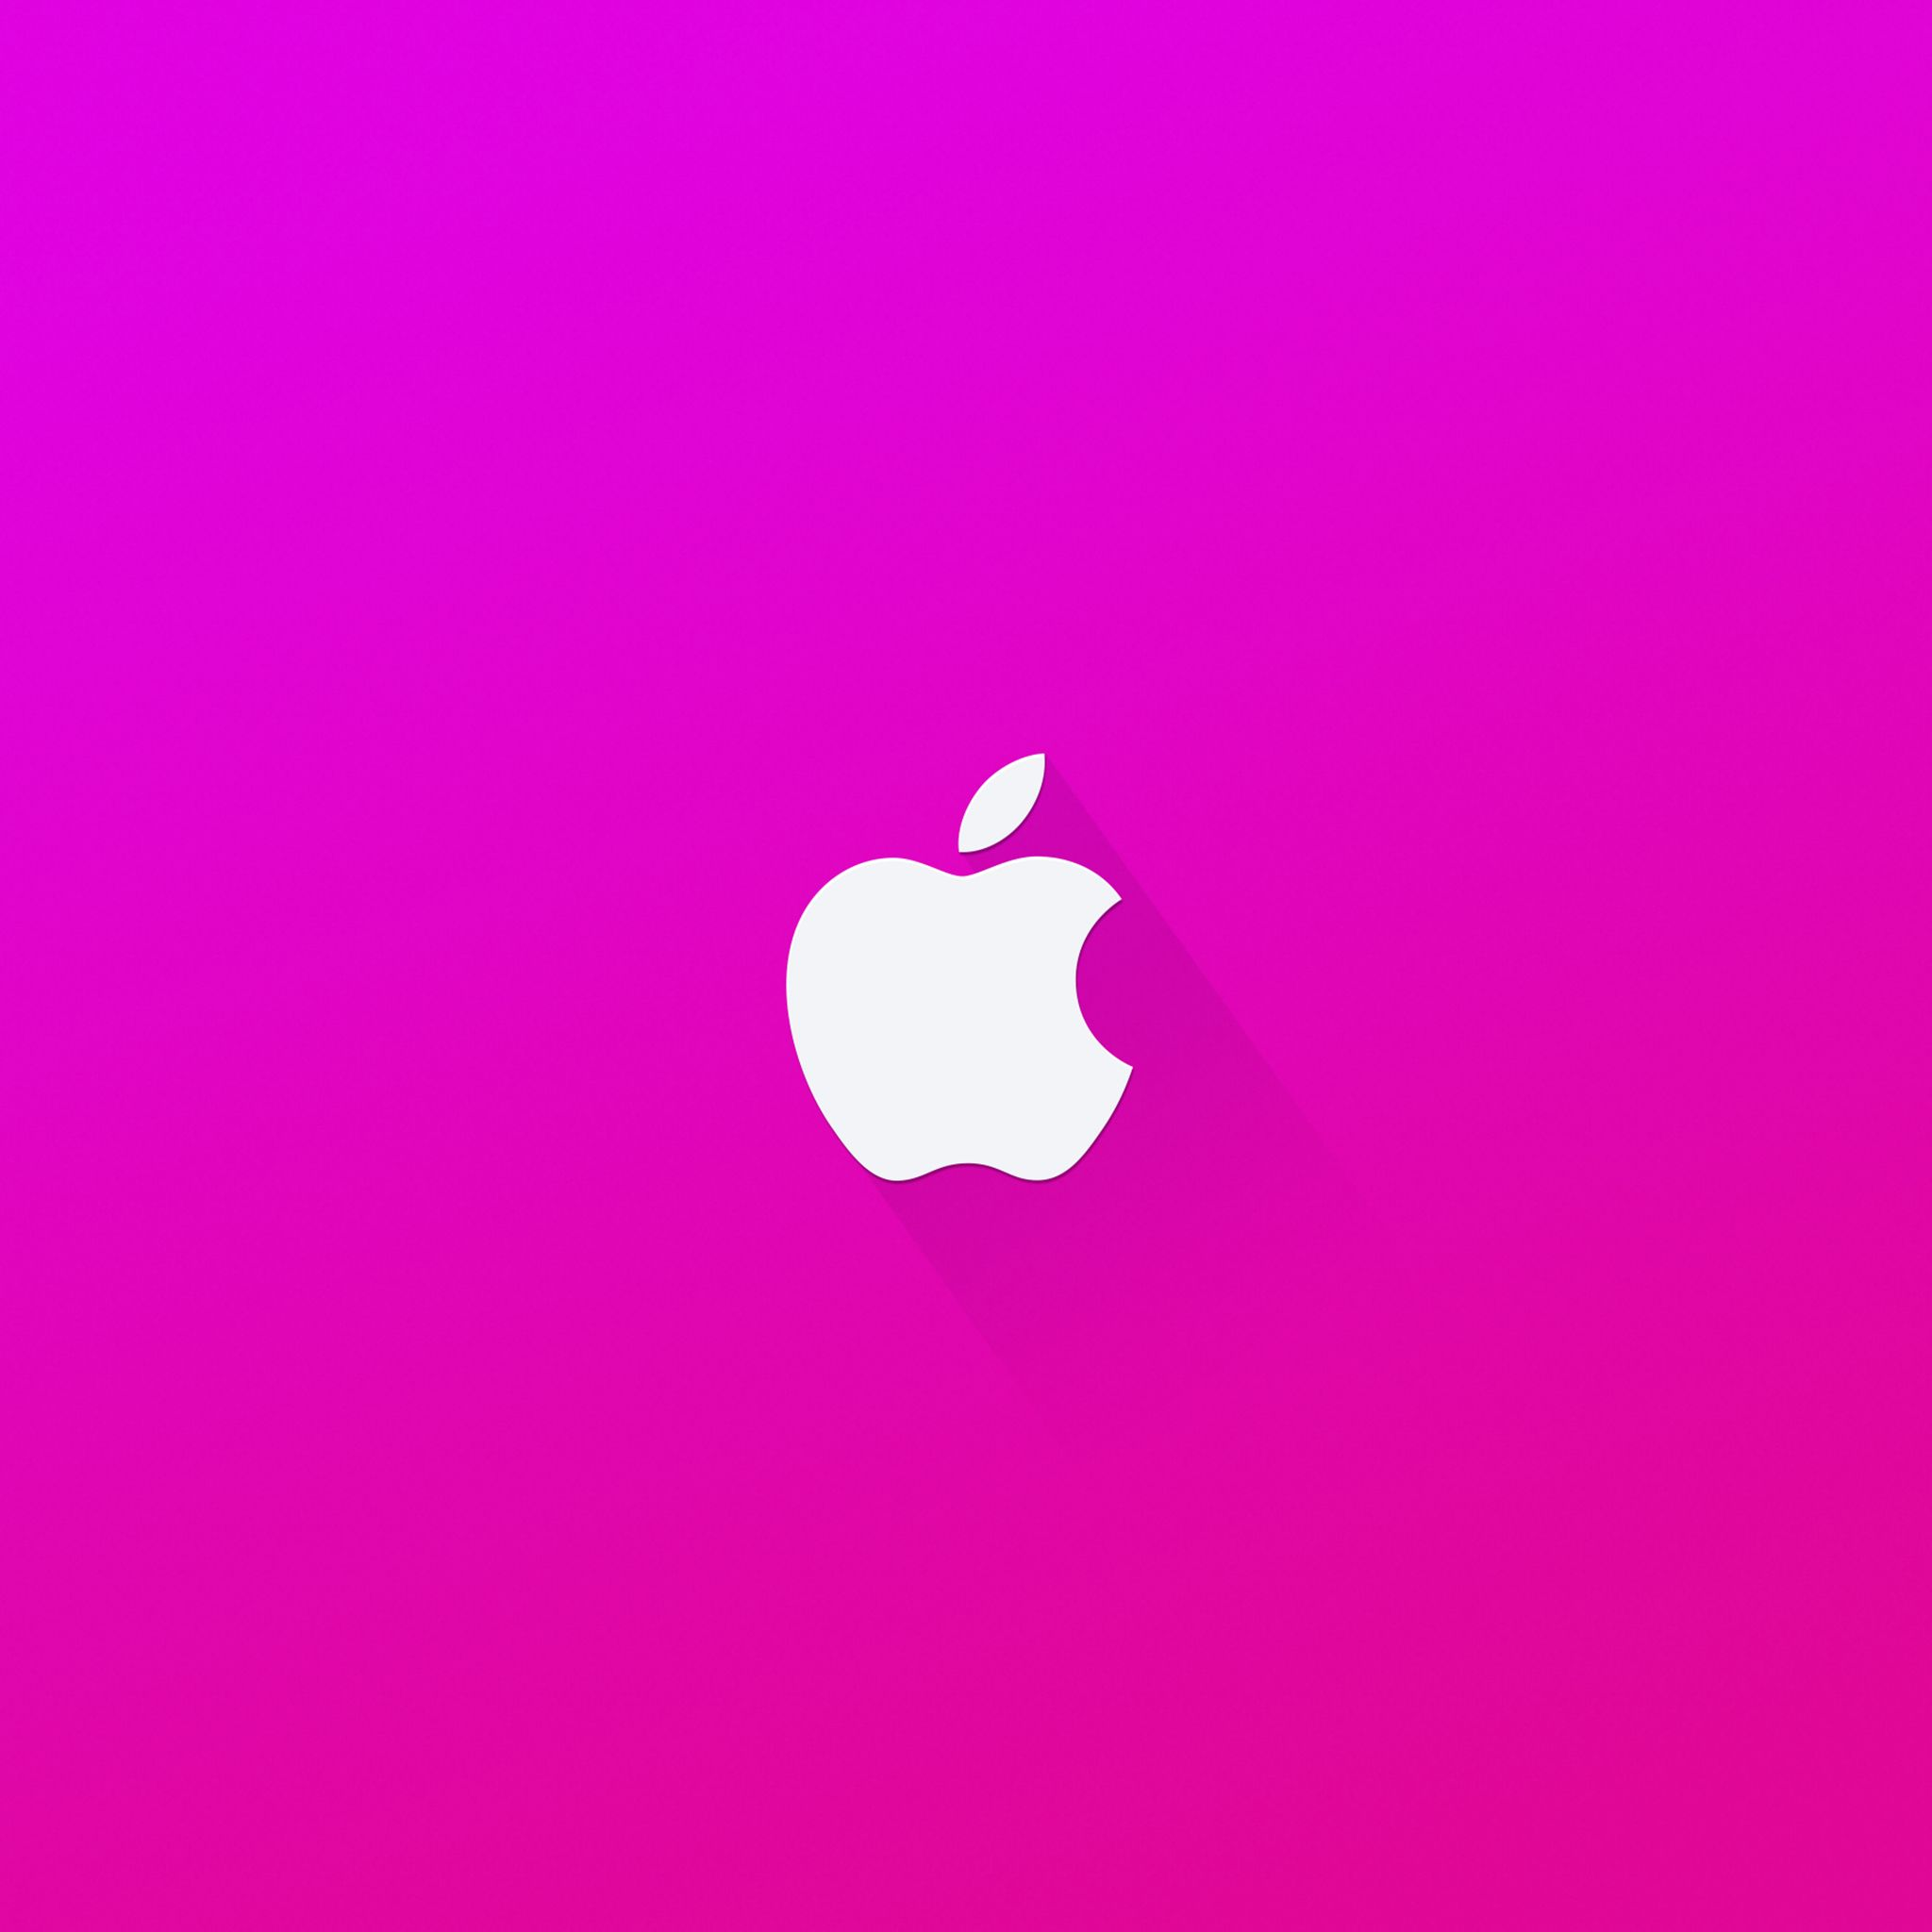 Iphone Wallpaper Pink: Apple Wallpapers For Iphone - Bing Images